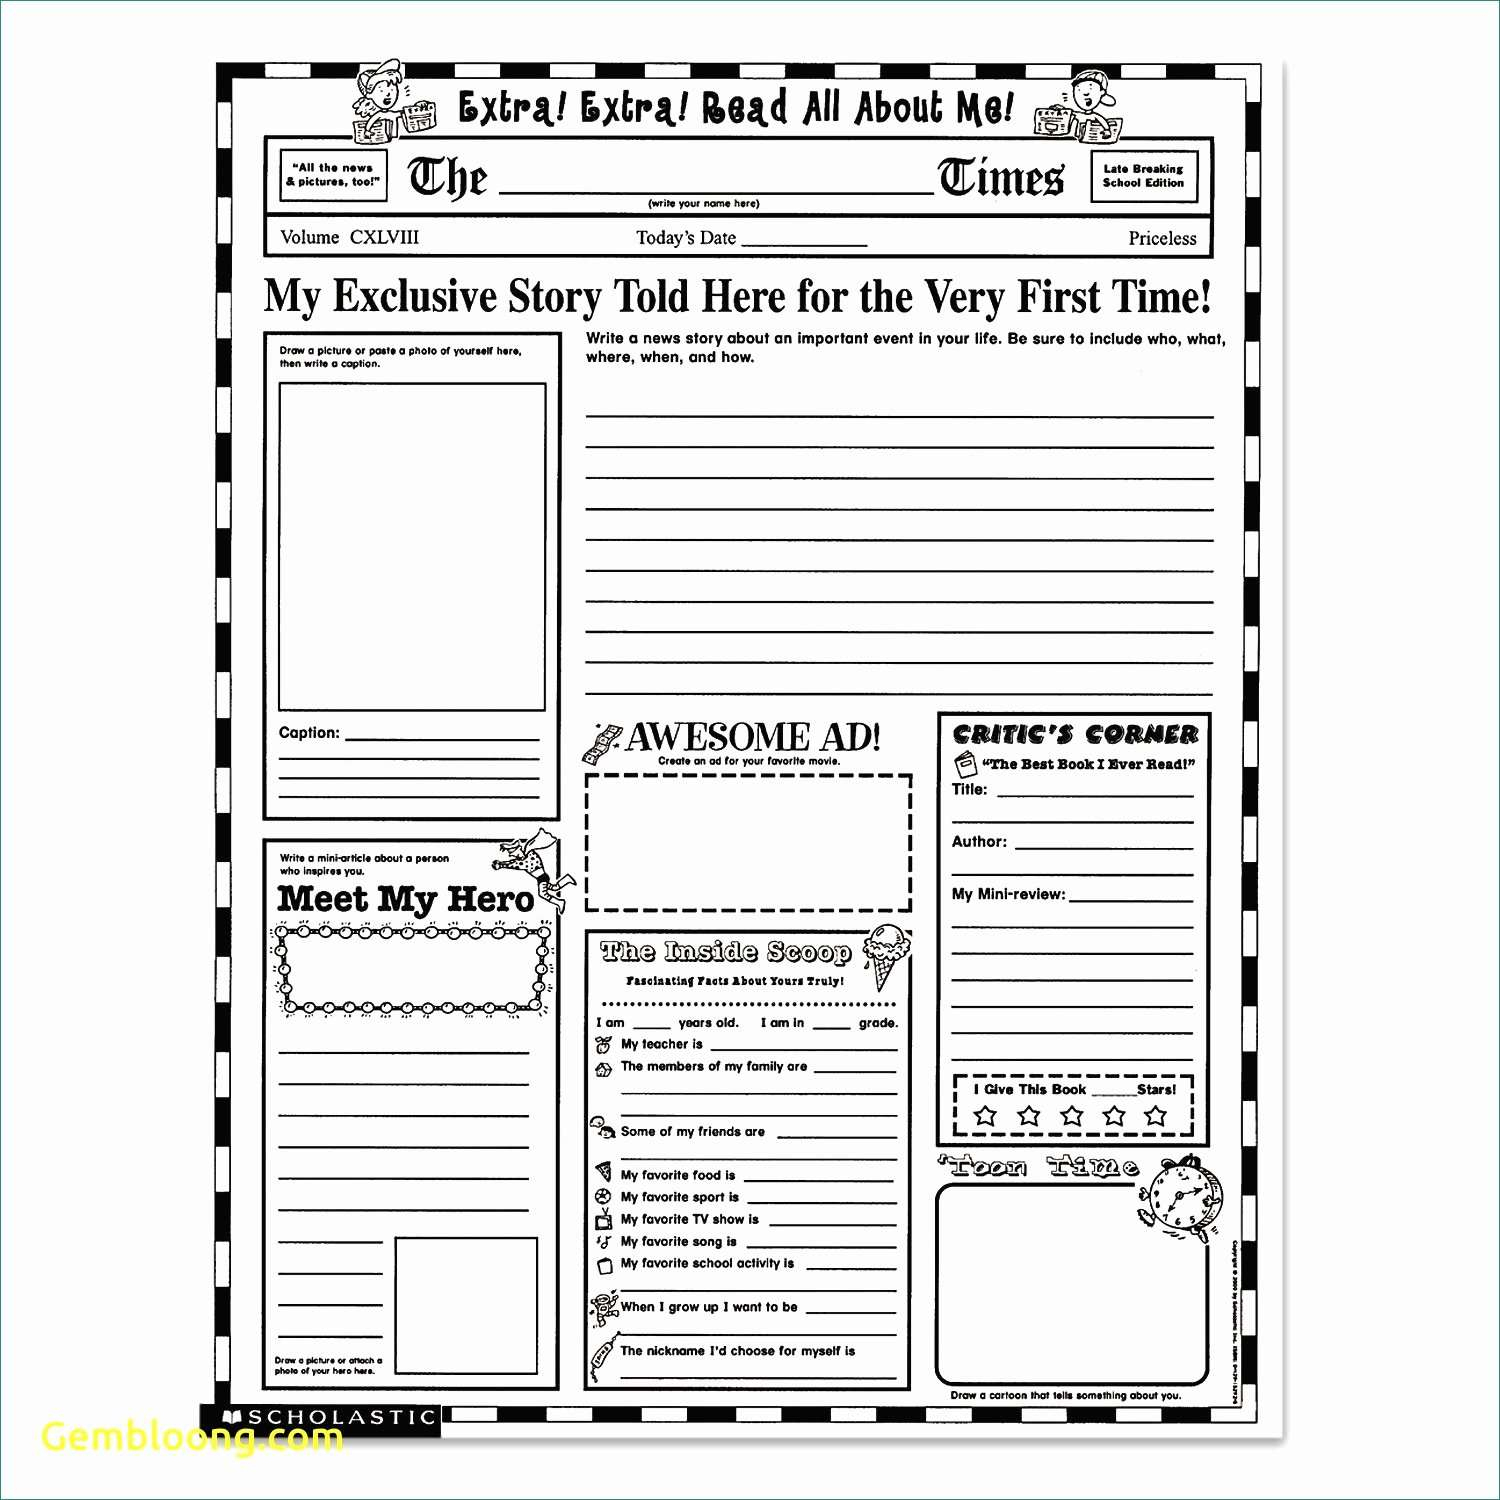 Free Printable Baby Shower Raffle Tickets Template - Image Cabinets - Free Printable Bridal Shower Raffle Tickets